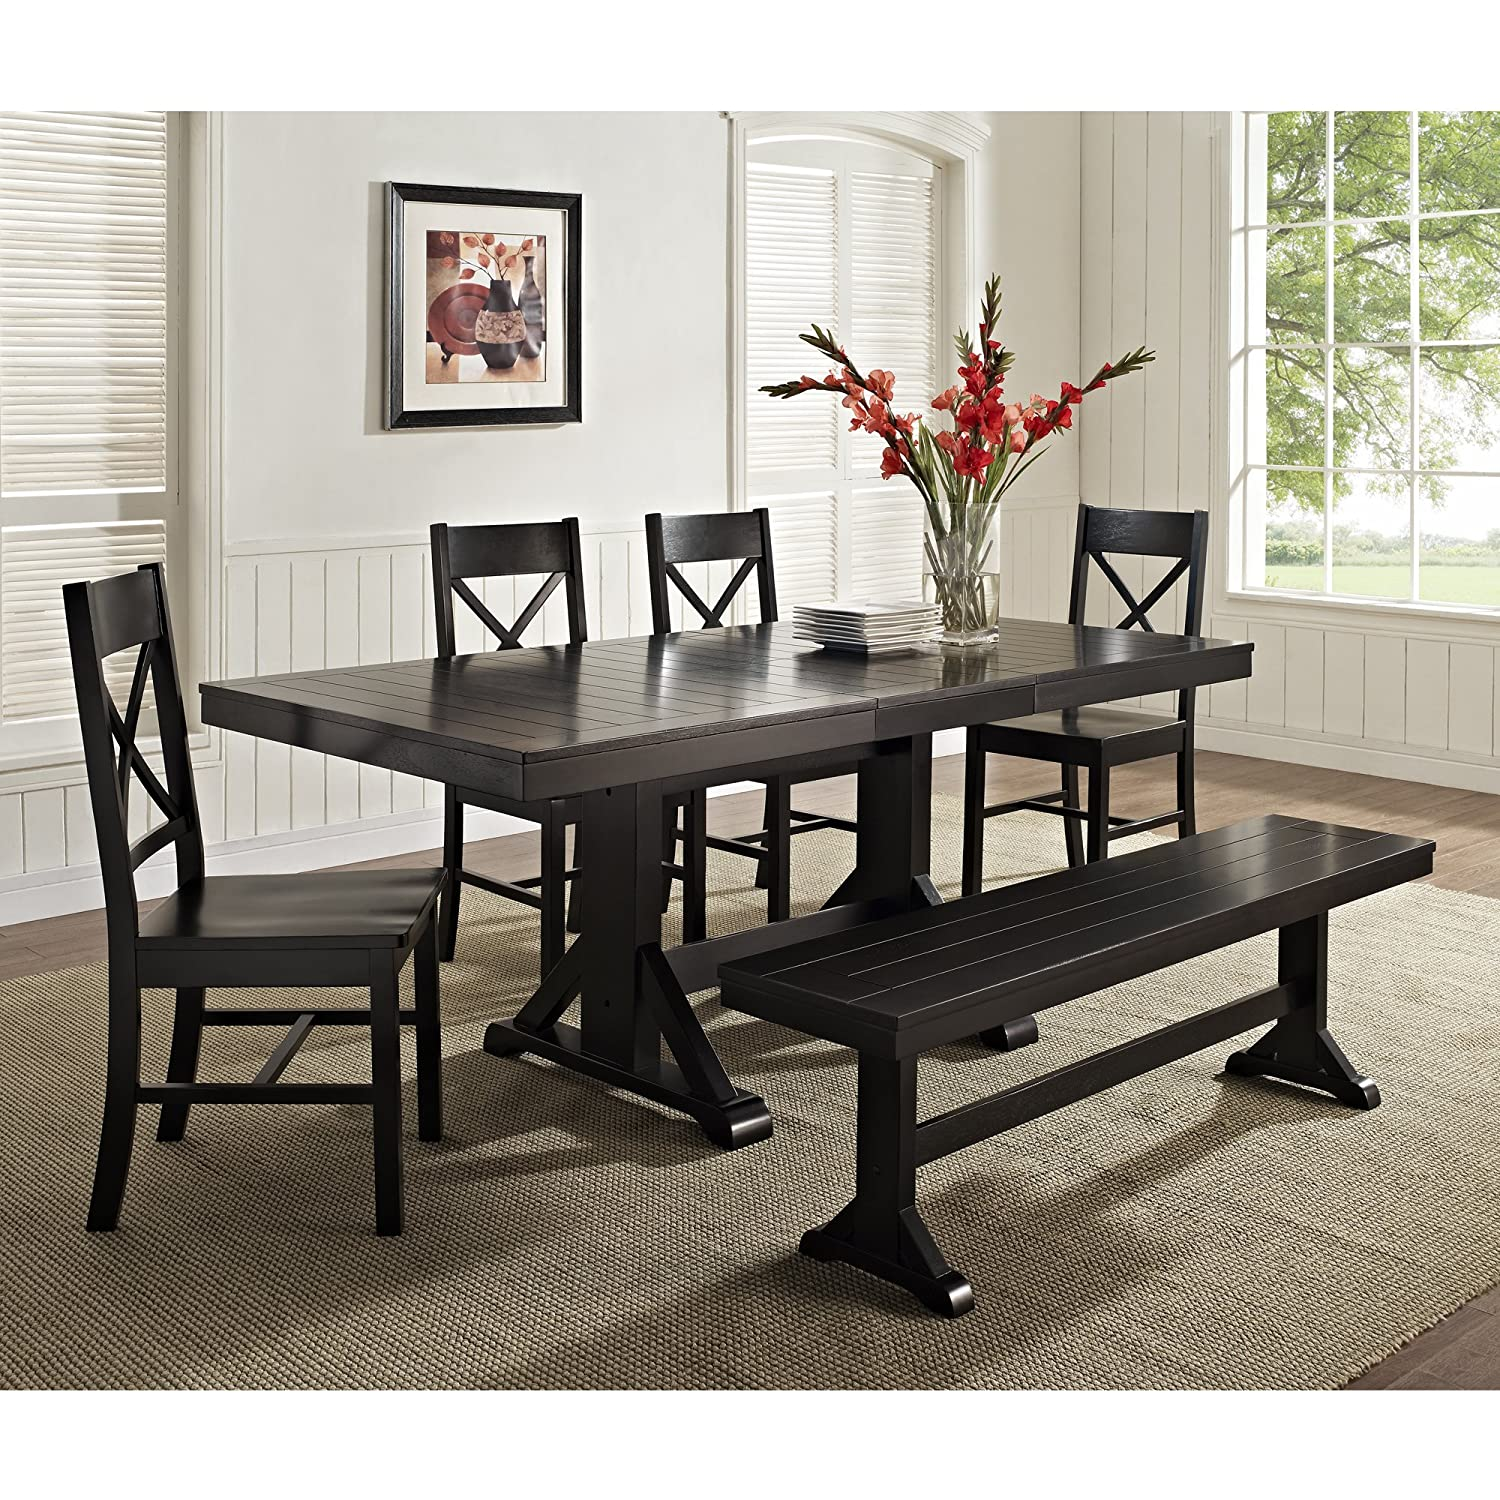 Walker Edison Furniture Antique Wood Bench, Black: Amazon.ca: Home U0026 Kitchen